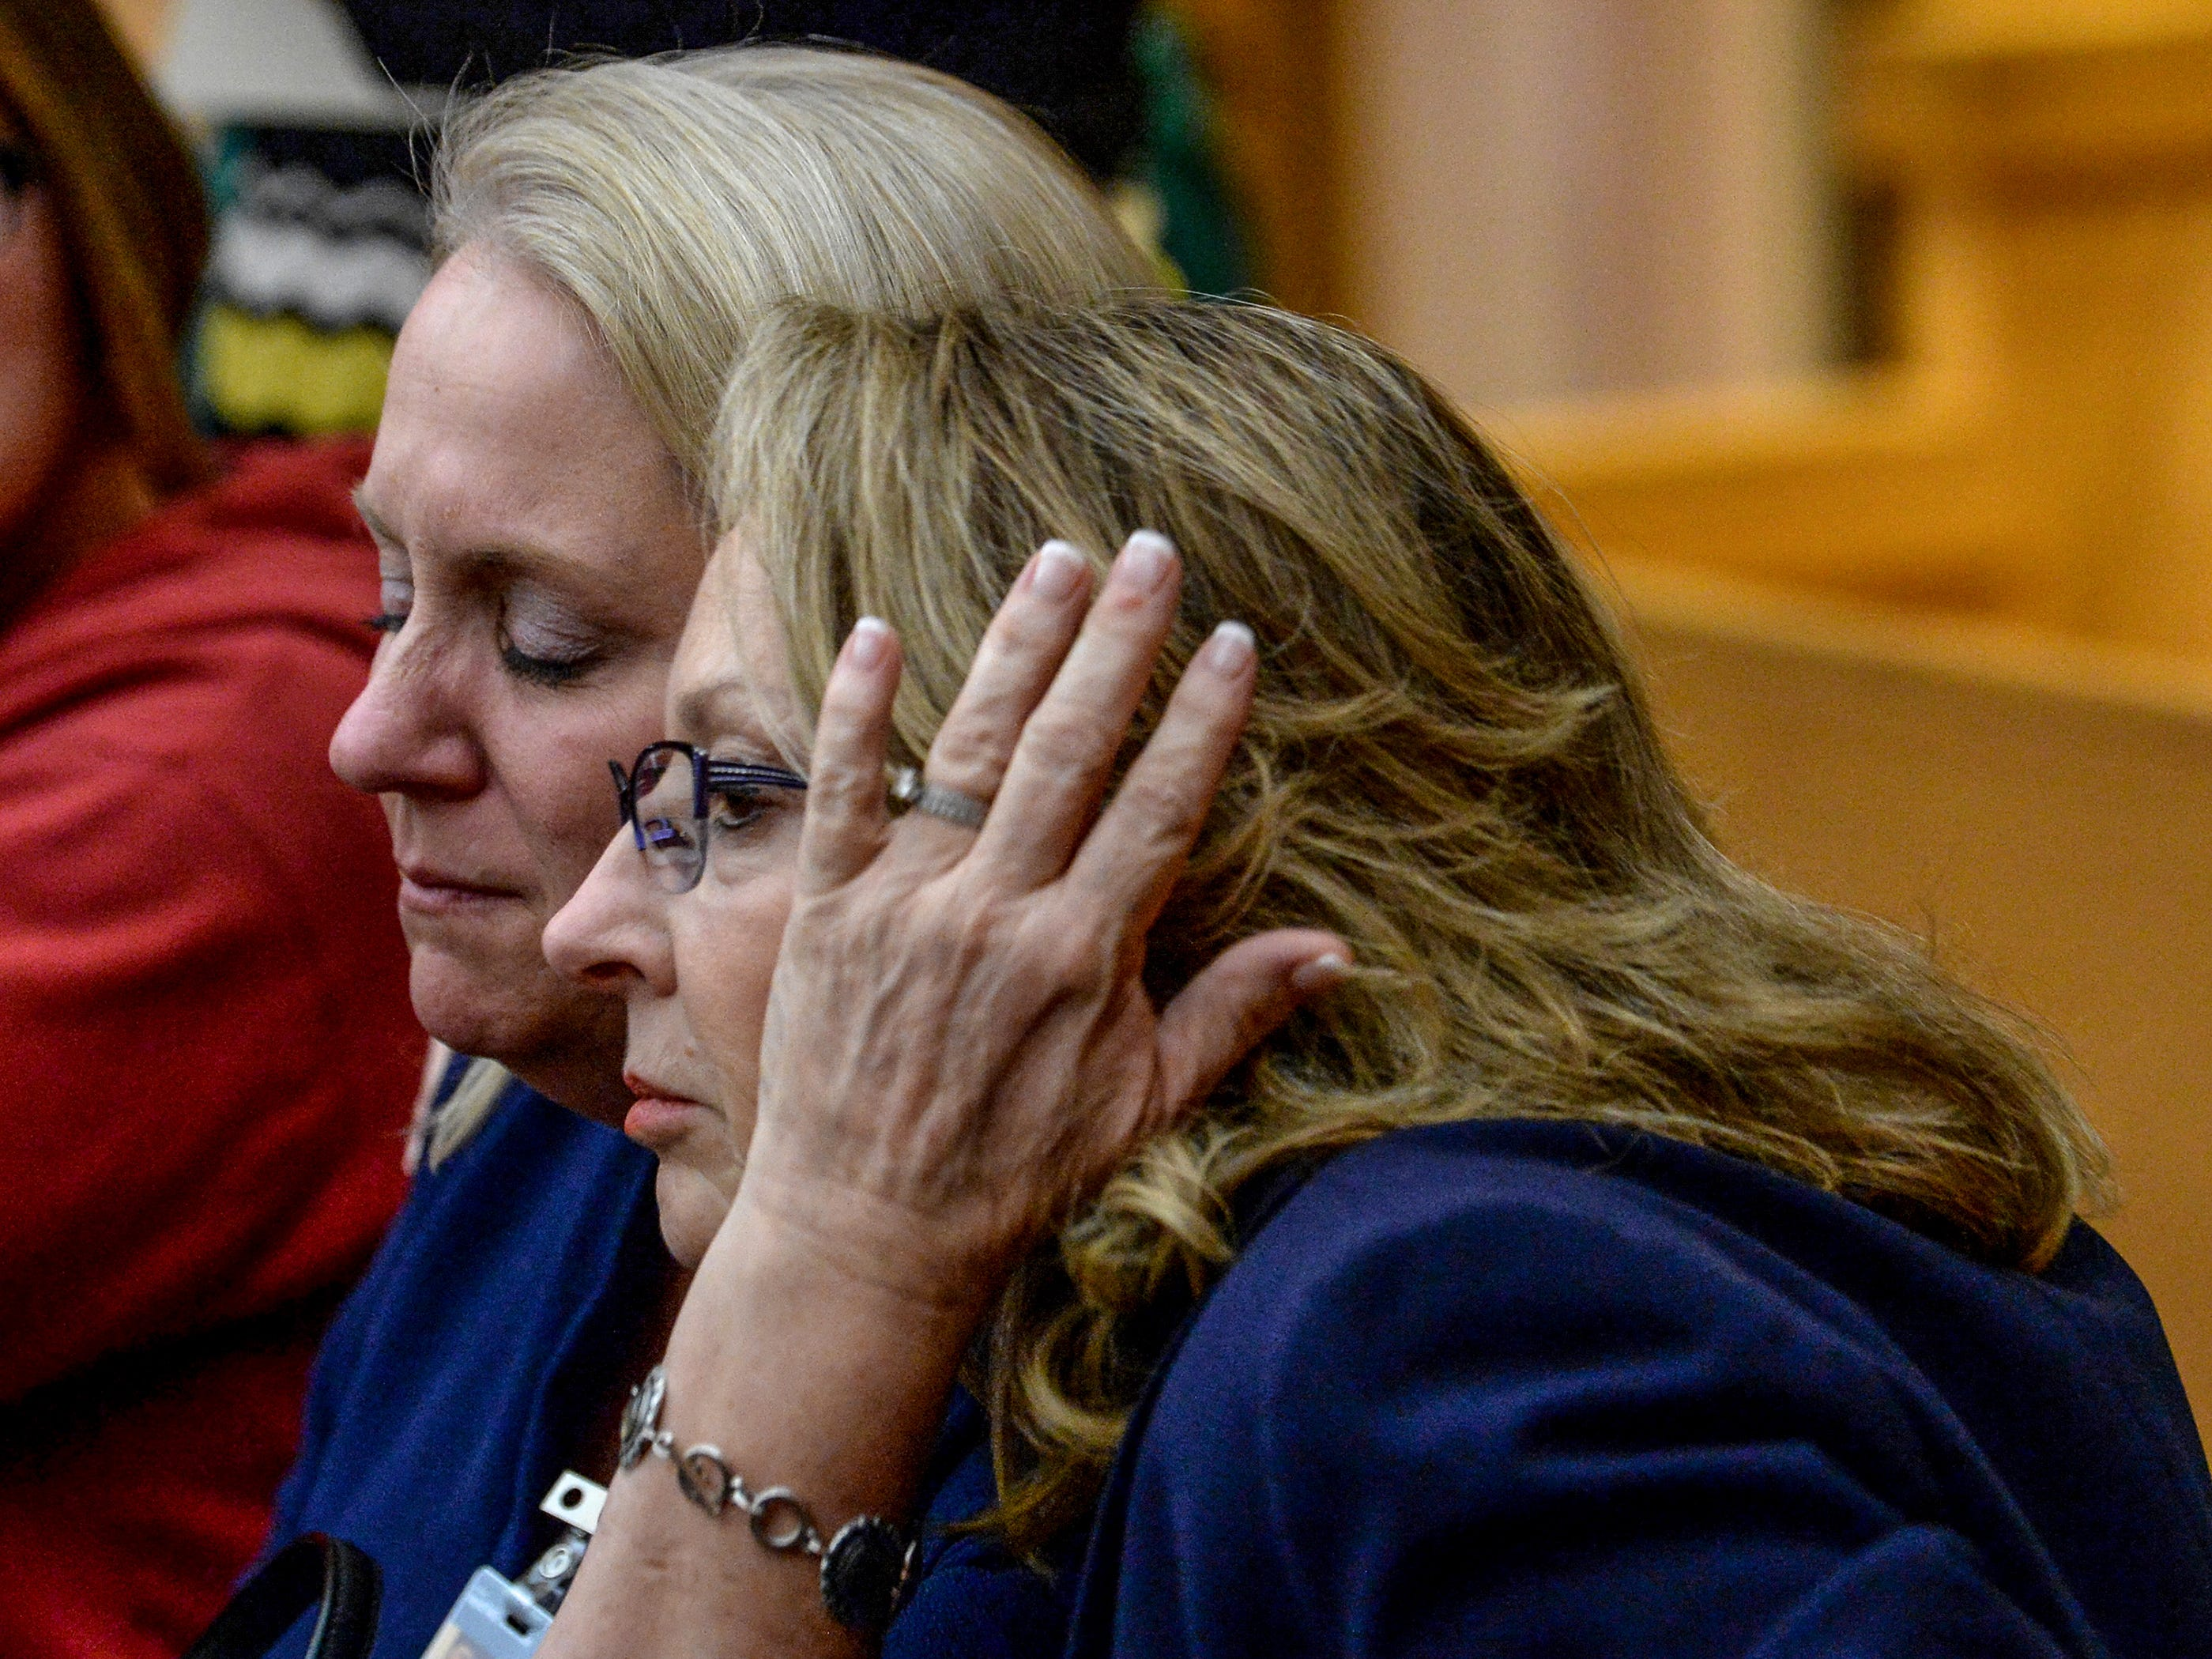 """Townville teen hearing"" Denise Fredricks, left, Principal at Townville Elementary School, hugs Joanne Avery, right, Superintendent of Anderson County School District Four, during a waiver hearing for Jesse Osborne at the Anderson County Courthouse on Monday, February 12, 2018. They finished watching a video of Jesse Osborne being interviewed in 2016 by investigators."